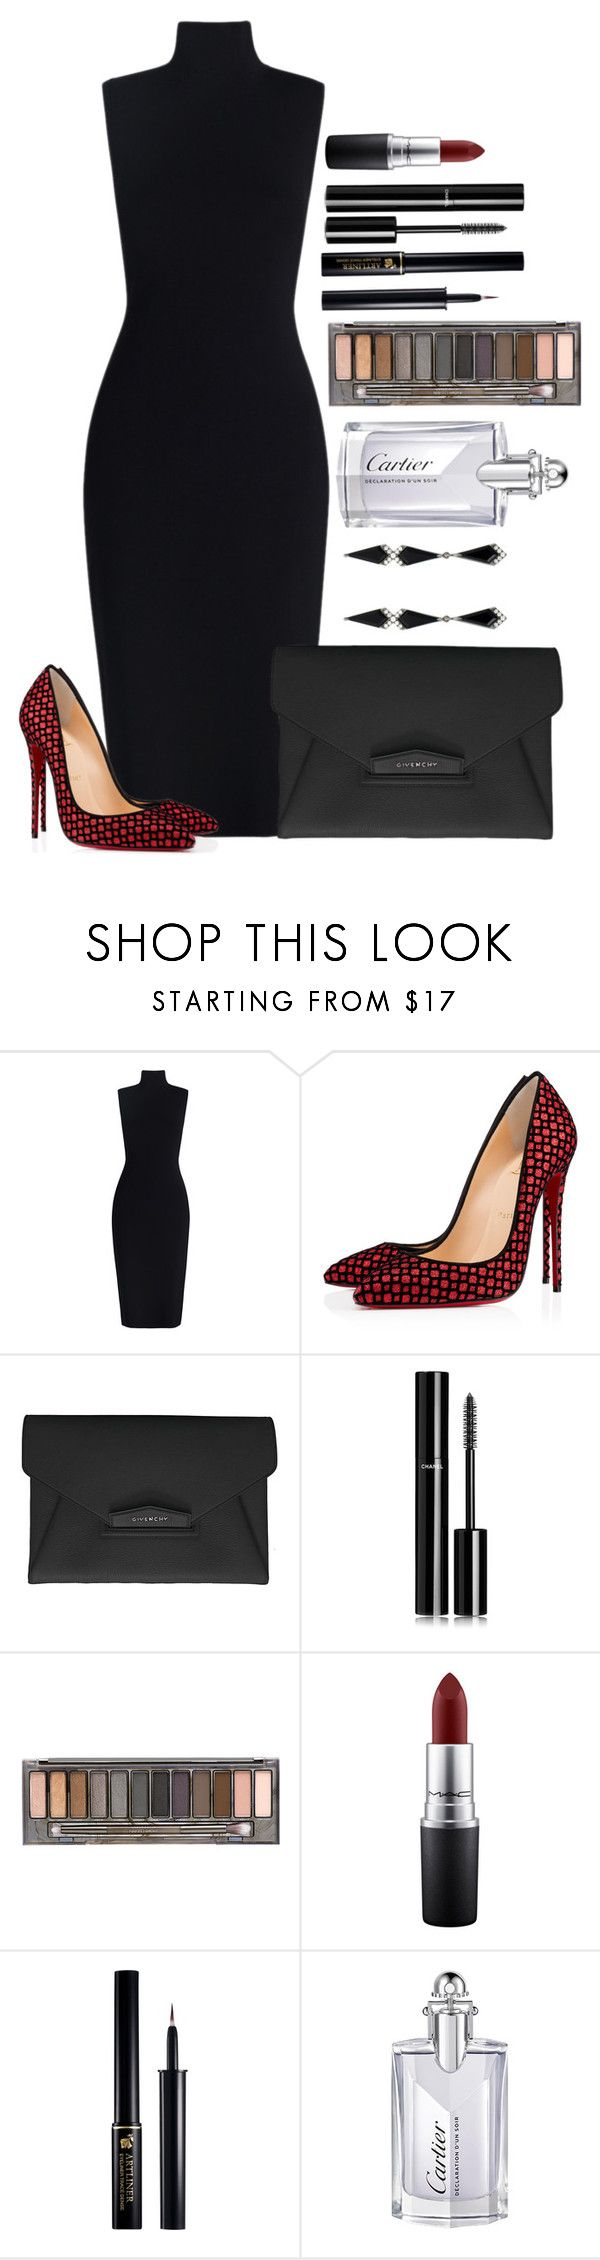 Untitled #1428 by fabianarveloc on Polyvore featuring Christian Louboutin, Givenchy, Chanel, Urban Decay, MAC Cosmetics, Lancôme, Cartier and Eva Fehren